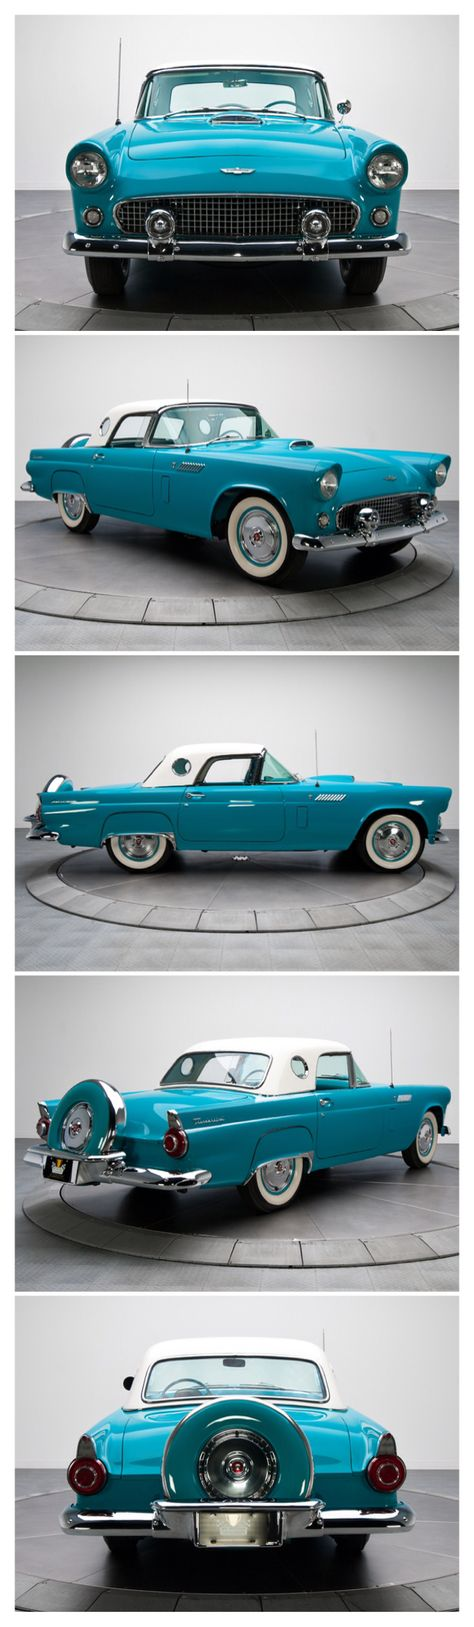 1956 Ford T-bird <3....Re-pin...Brought to you by #CarInsurance at #HouseofInsurance in Eugene, Oregon